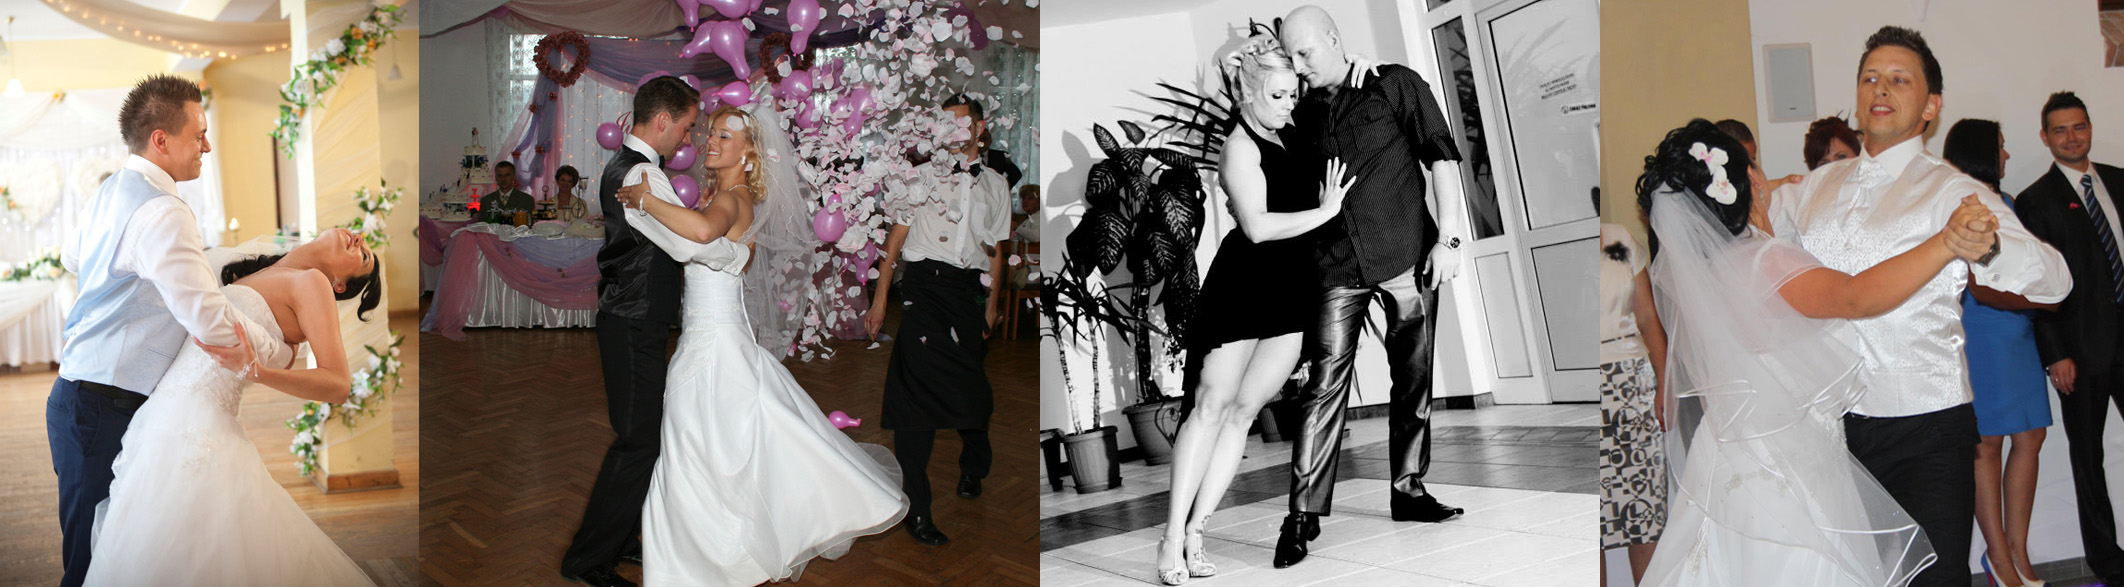 For Those Who Want To Learn Fast Or Would Like Prepare Wedding Choreography We Also Provide Private Classes Our Dance In North London